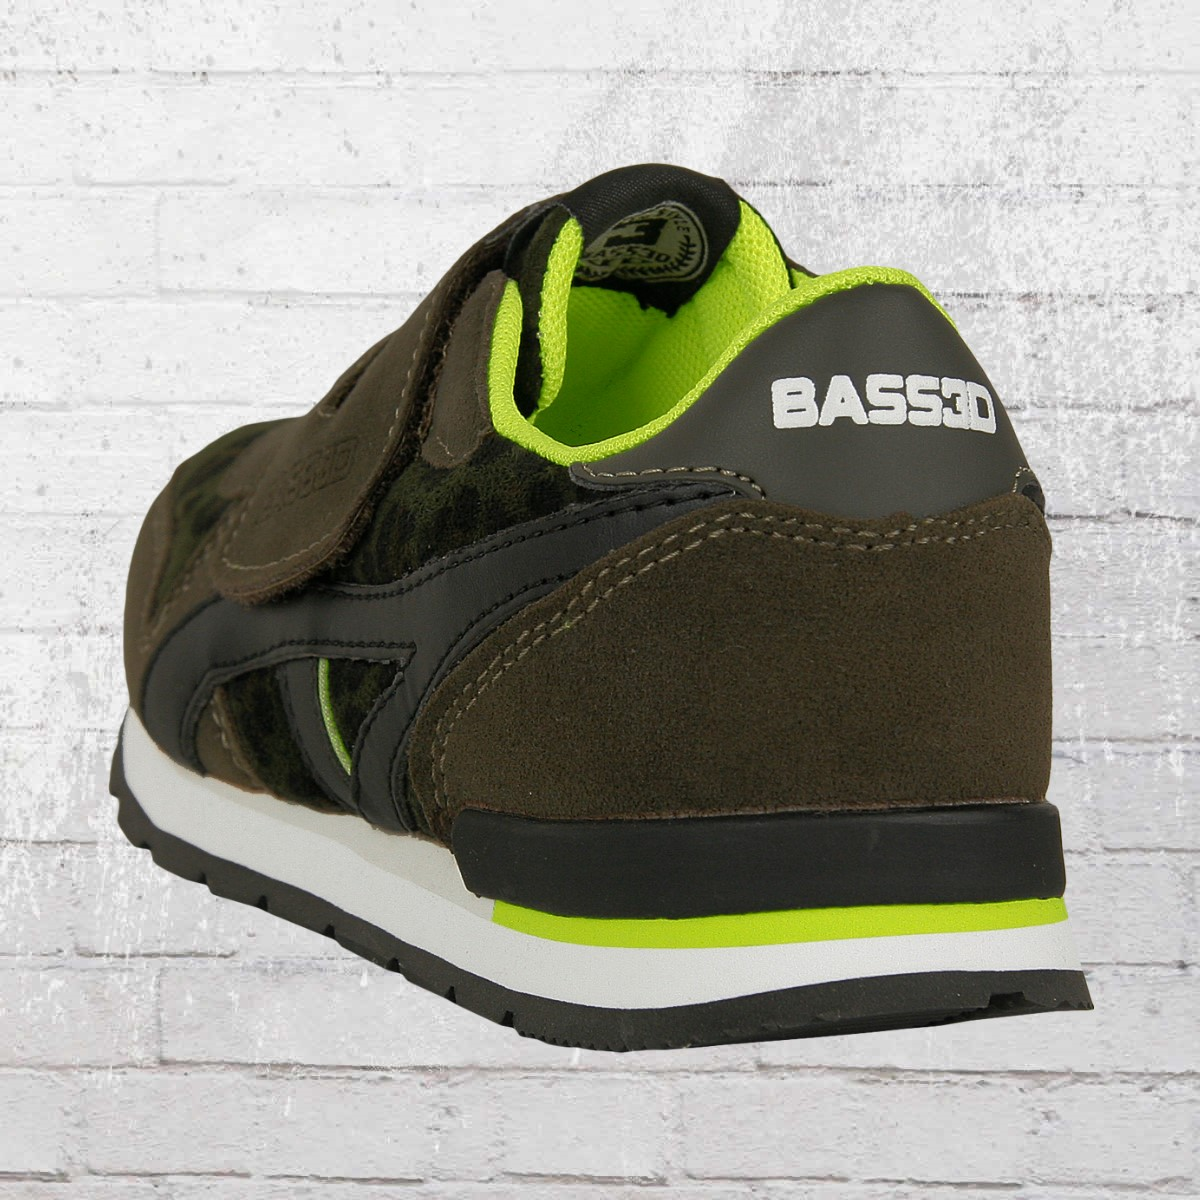 14969f02 Order now | BASSED by Xti Children Shoes Zapato Nino Sneaker Leo olive